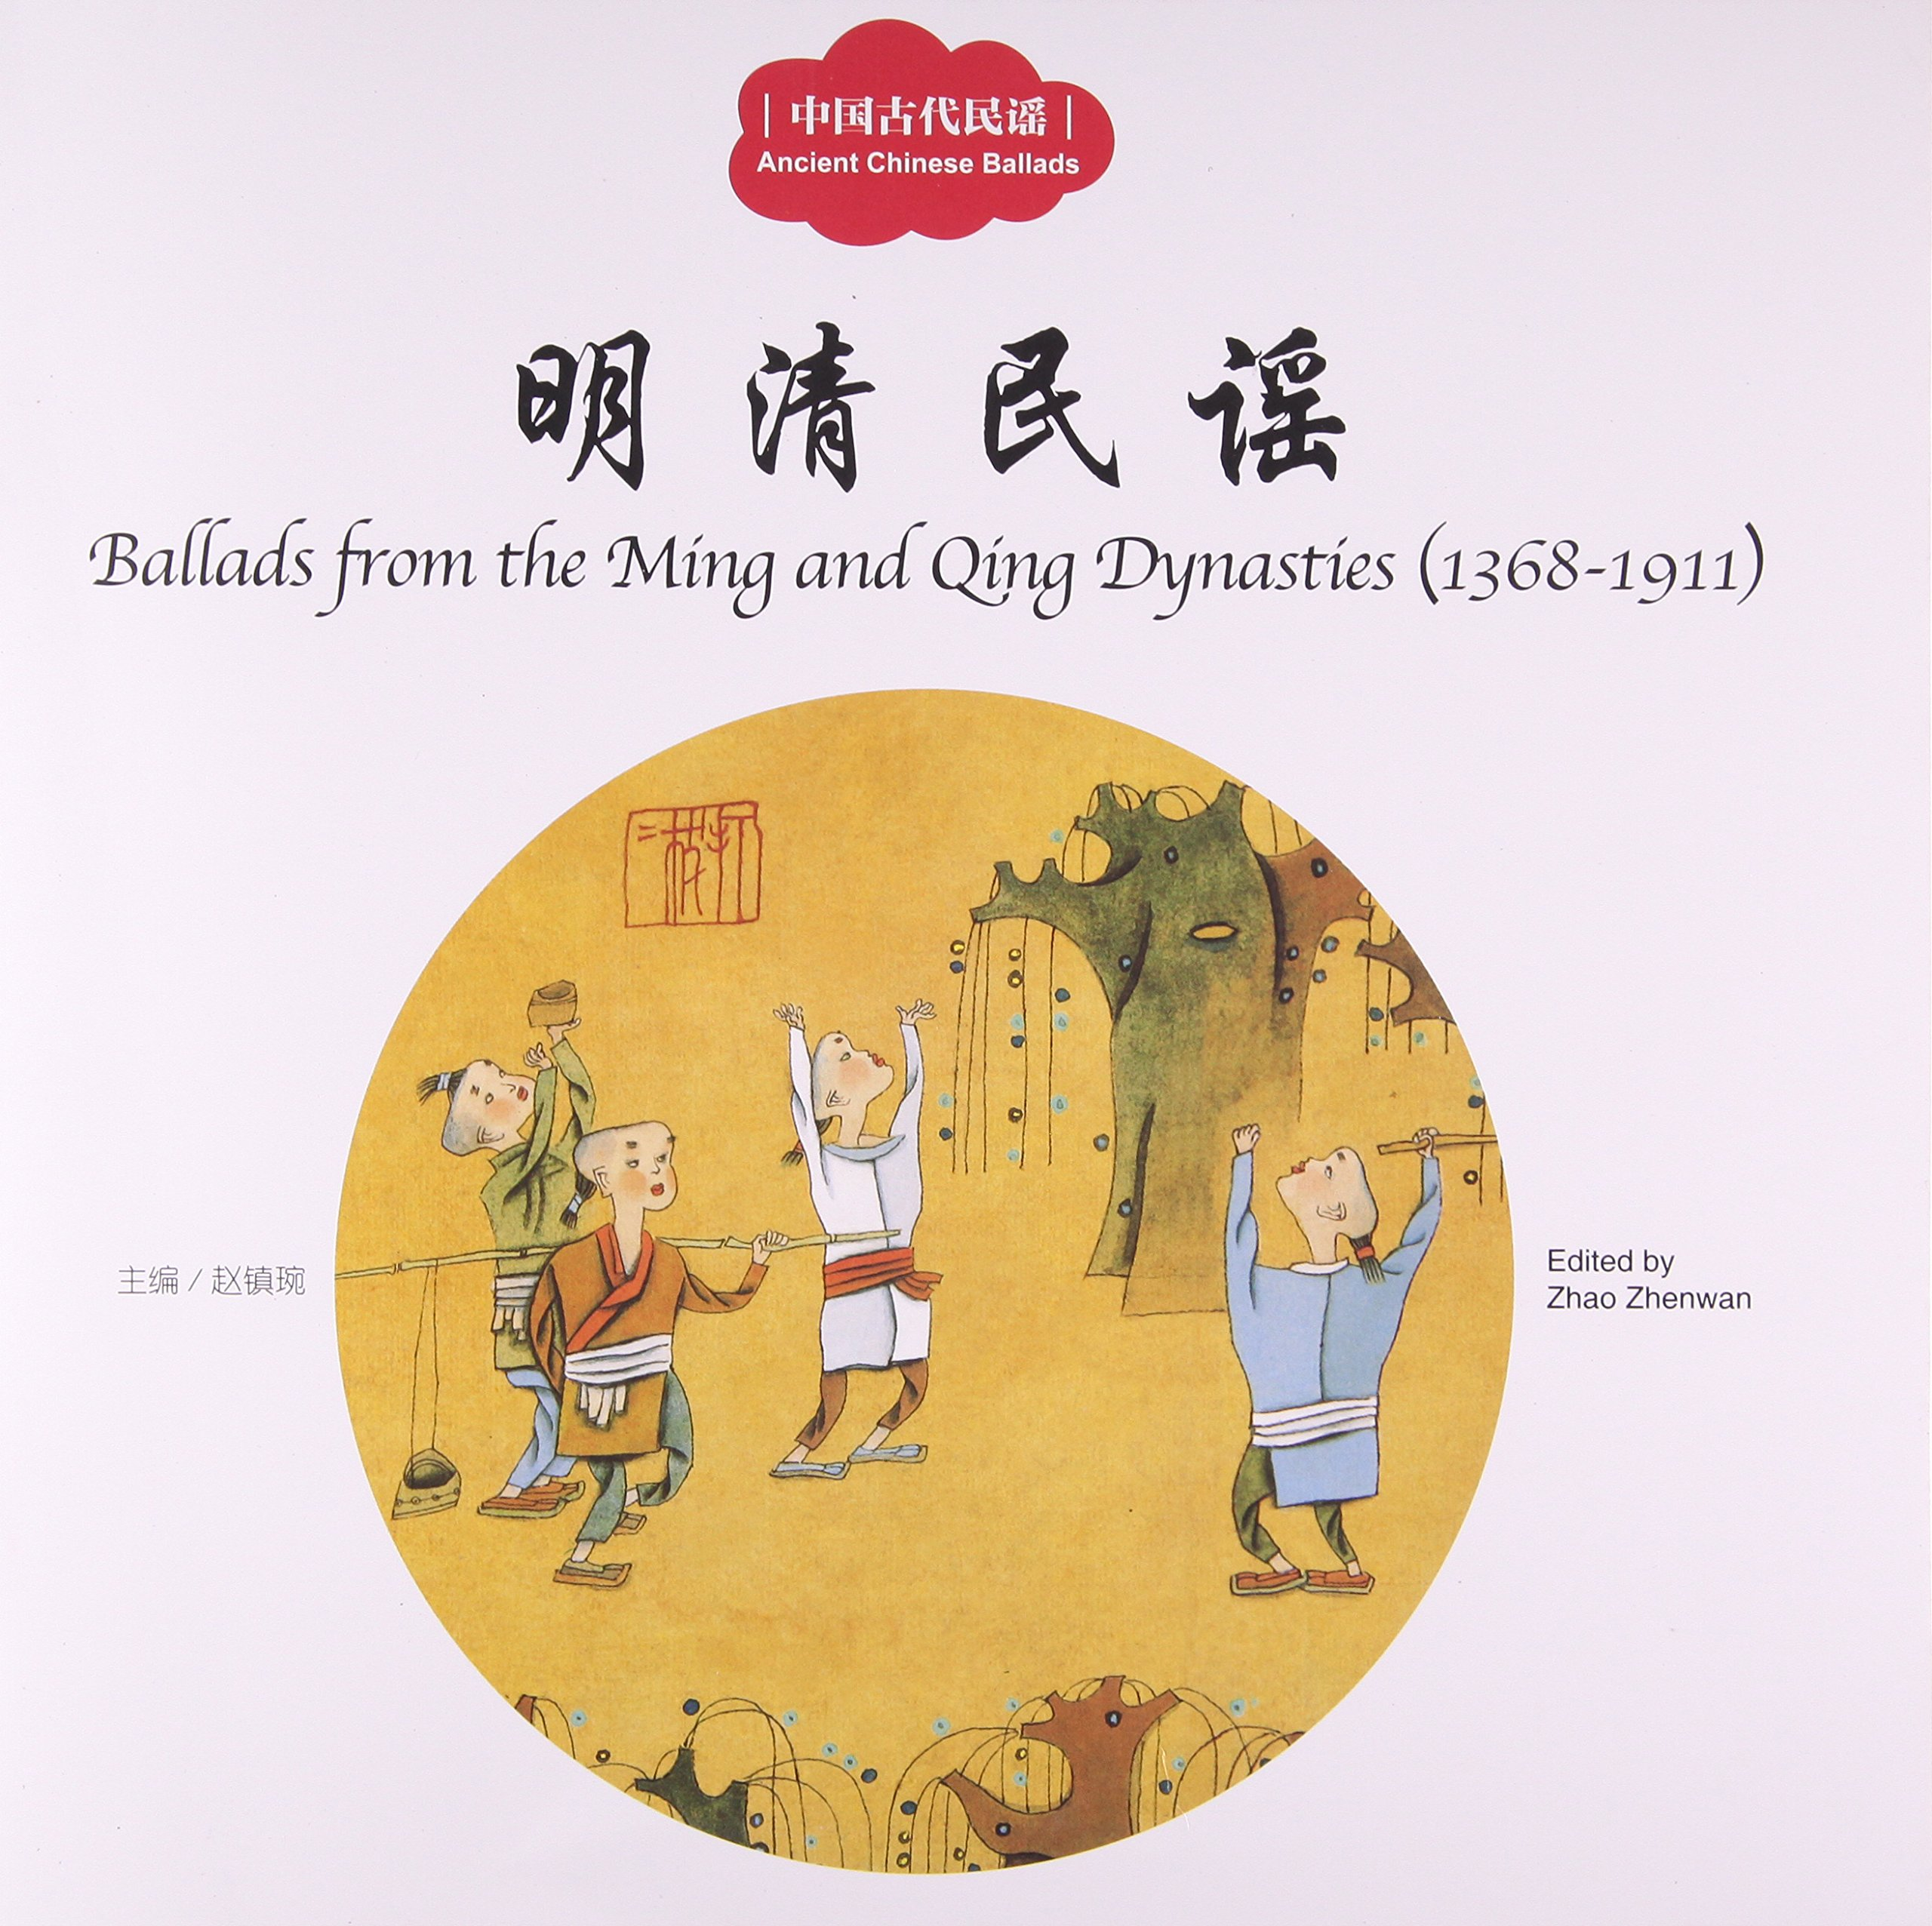 Ballads from the Ming and Qing Dynasties (1368-1911) - First Books for Early Learning Series